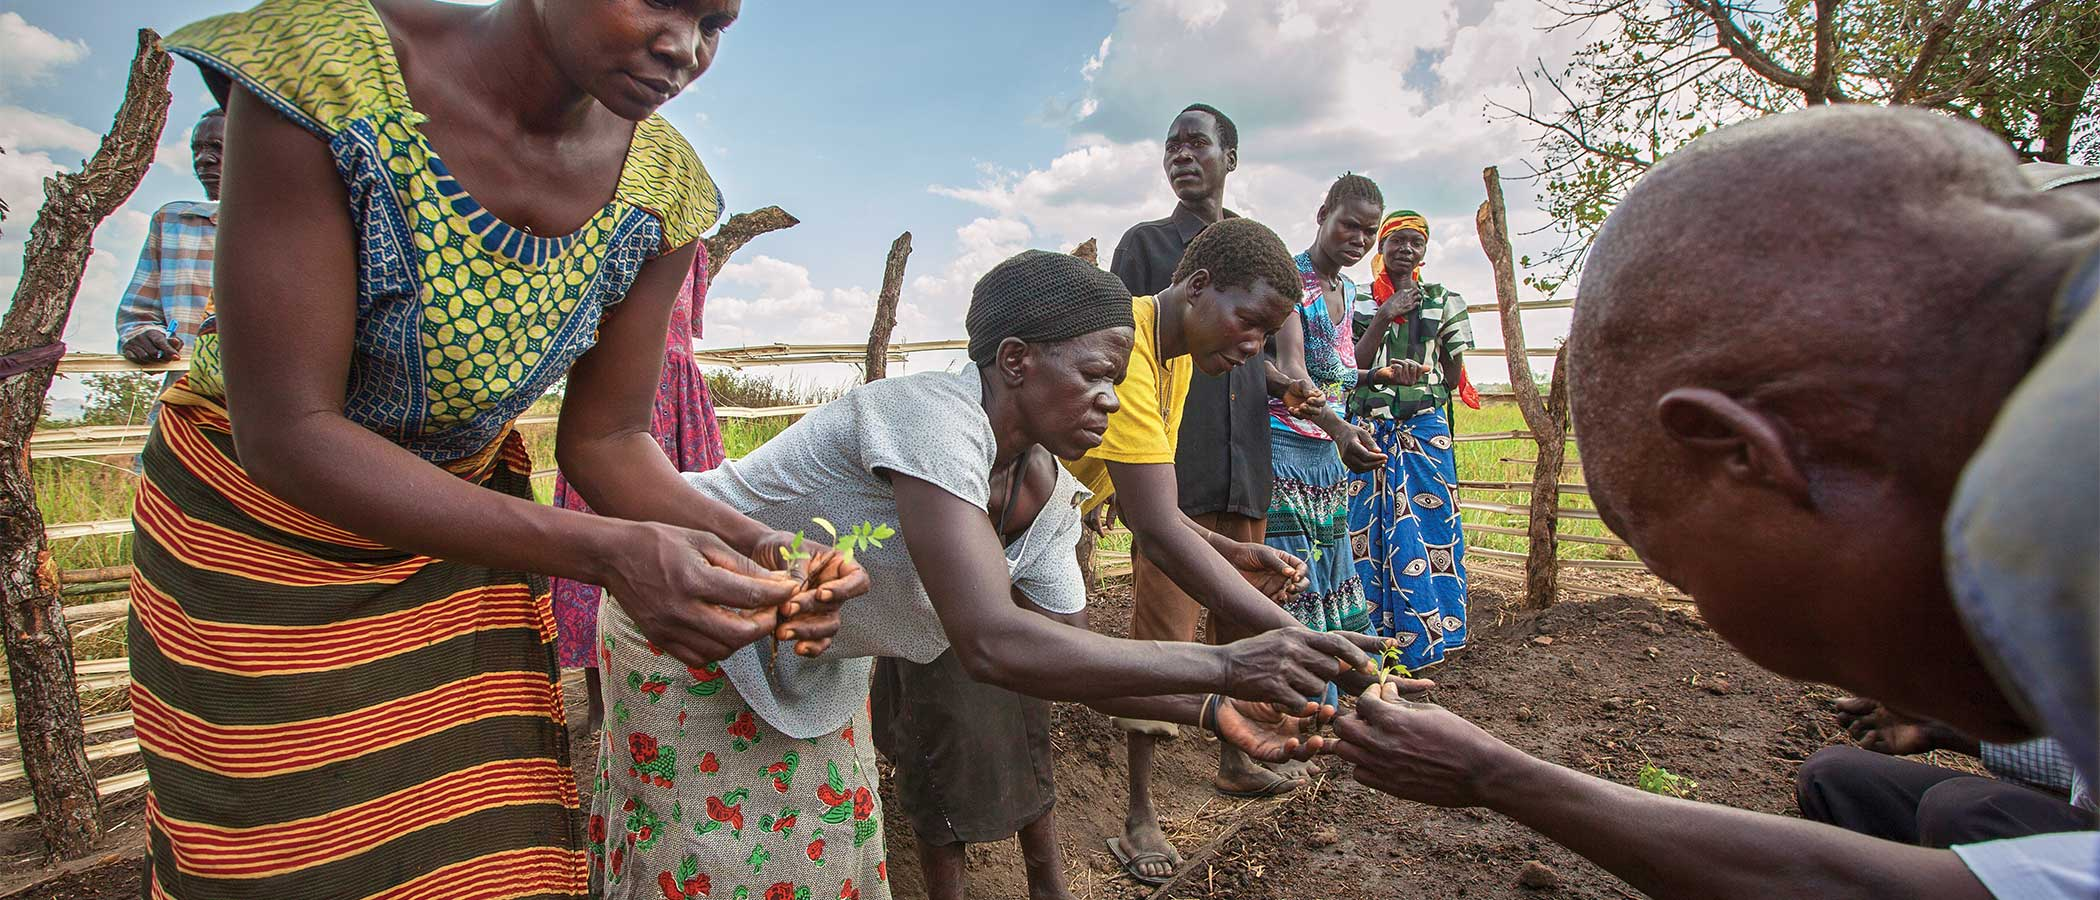 Villagers handle seedlings during a permagarden planting, a training sponsored by CAFWA, Community Action Fund for Women in Africa.